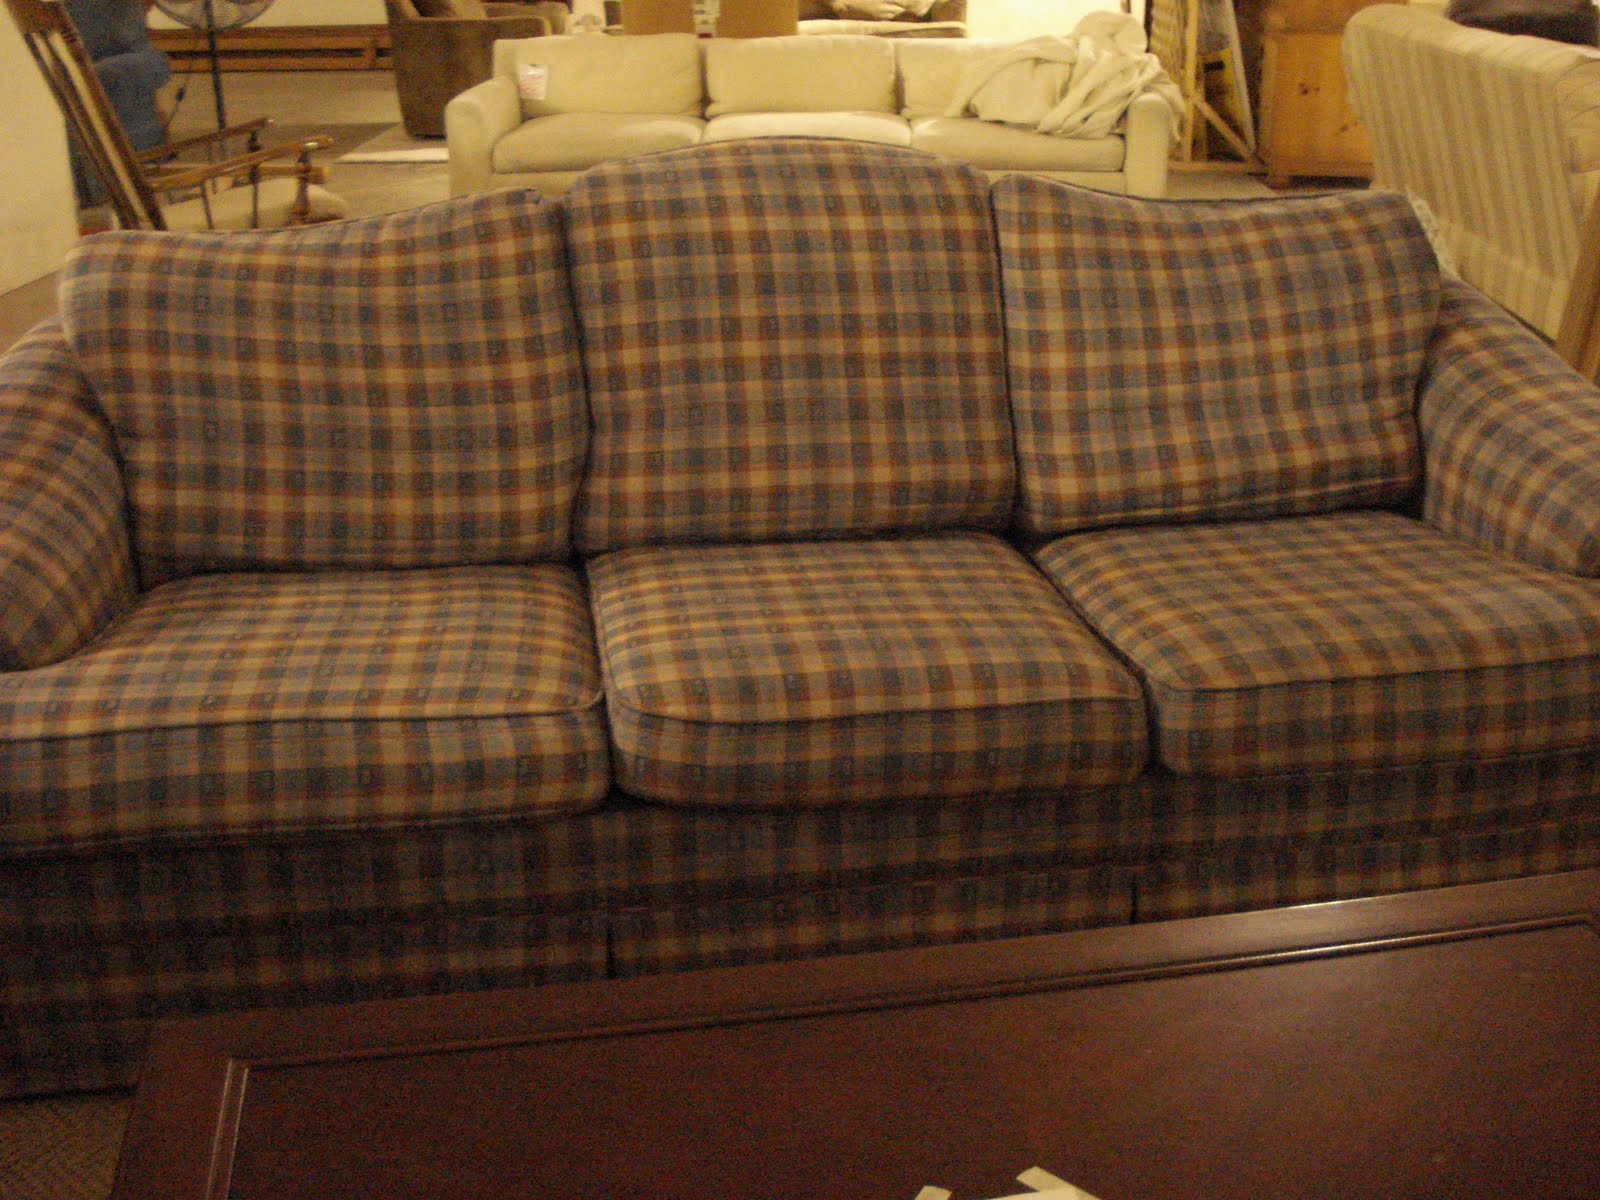 country plaid sofas plaid living room furniture. Black Bedroom Furniture Sets. Home Design Ideas